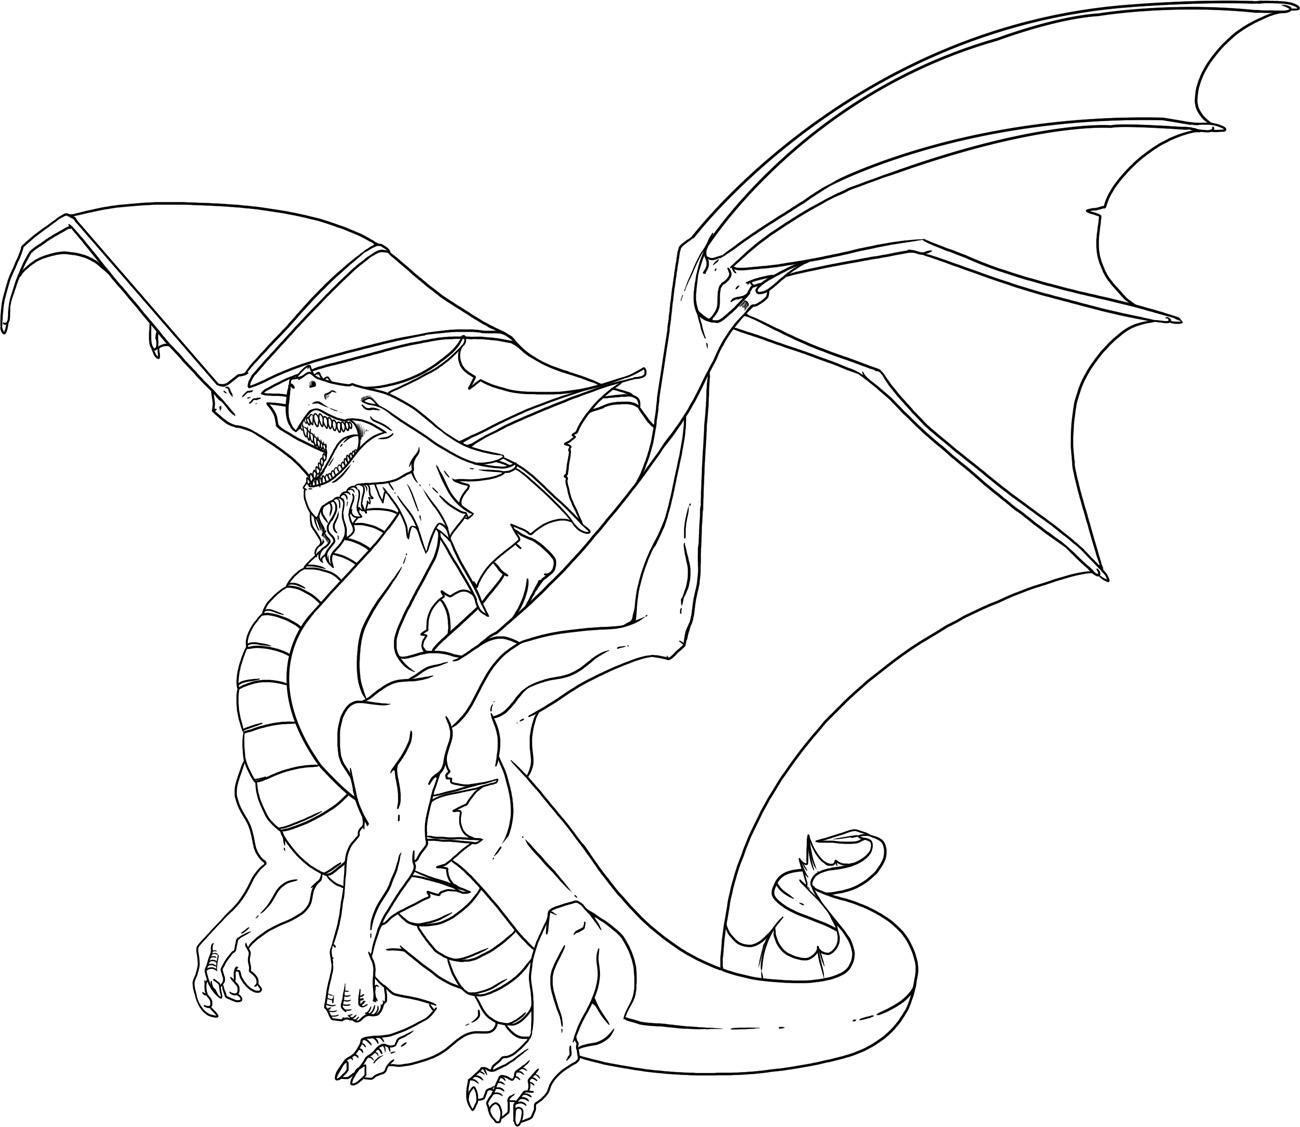 printable dragon coloring pages - Printable Dragon Coloring Pages